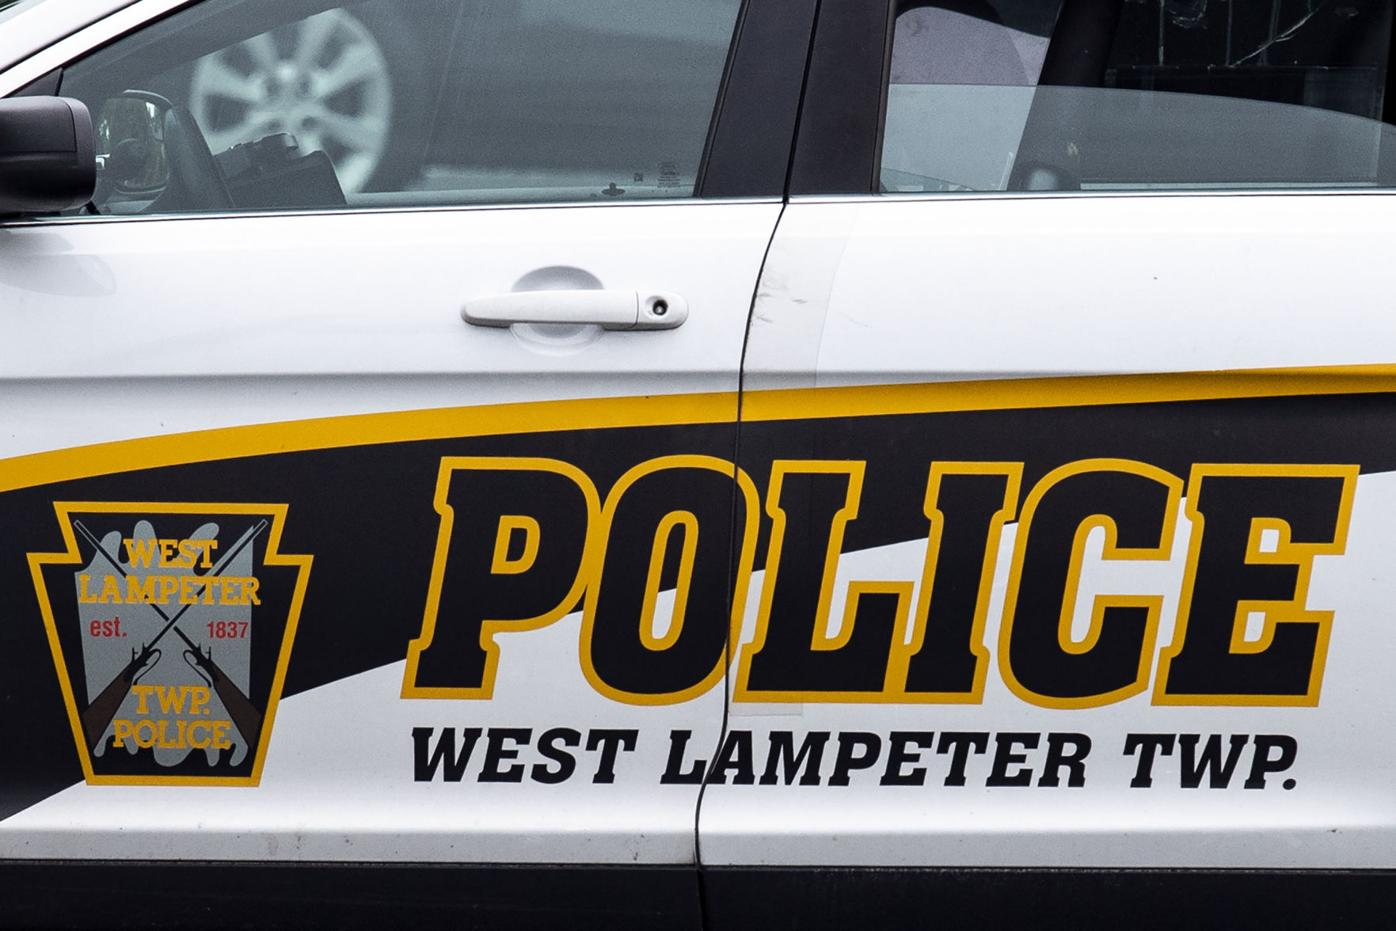 West Lampeter TWP police